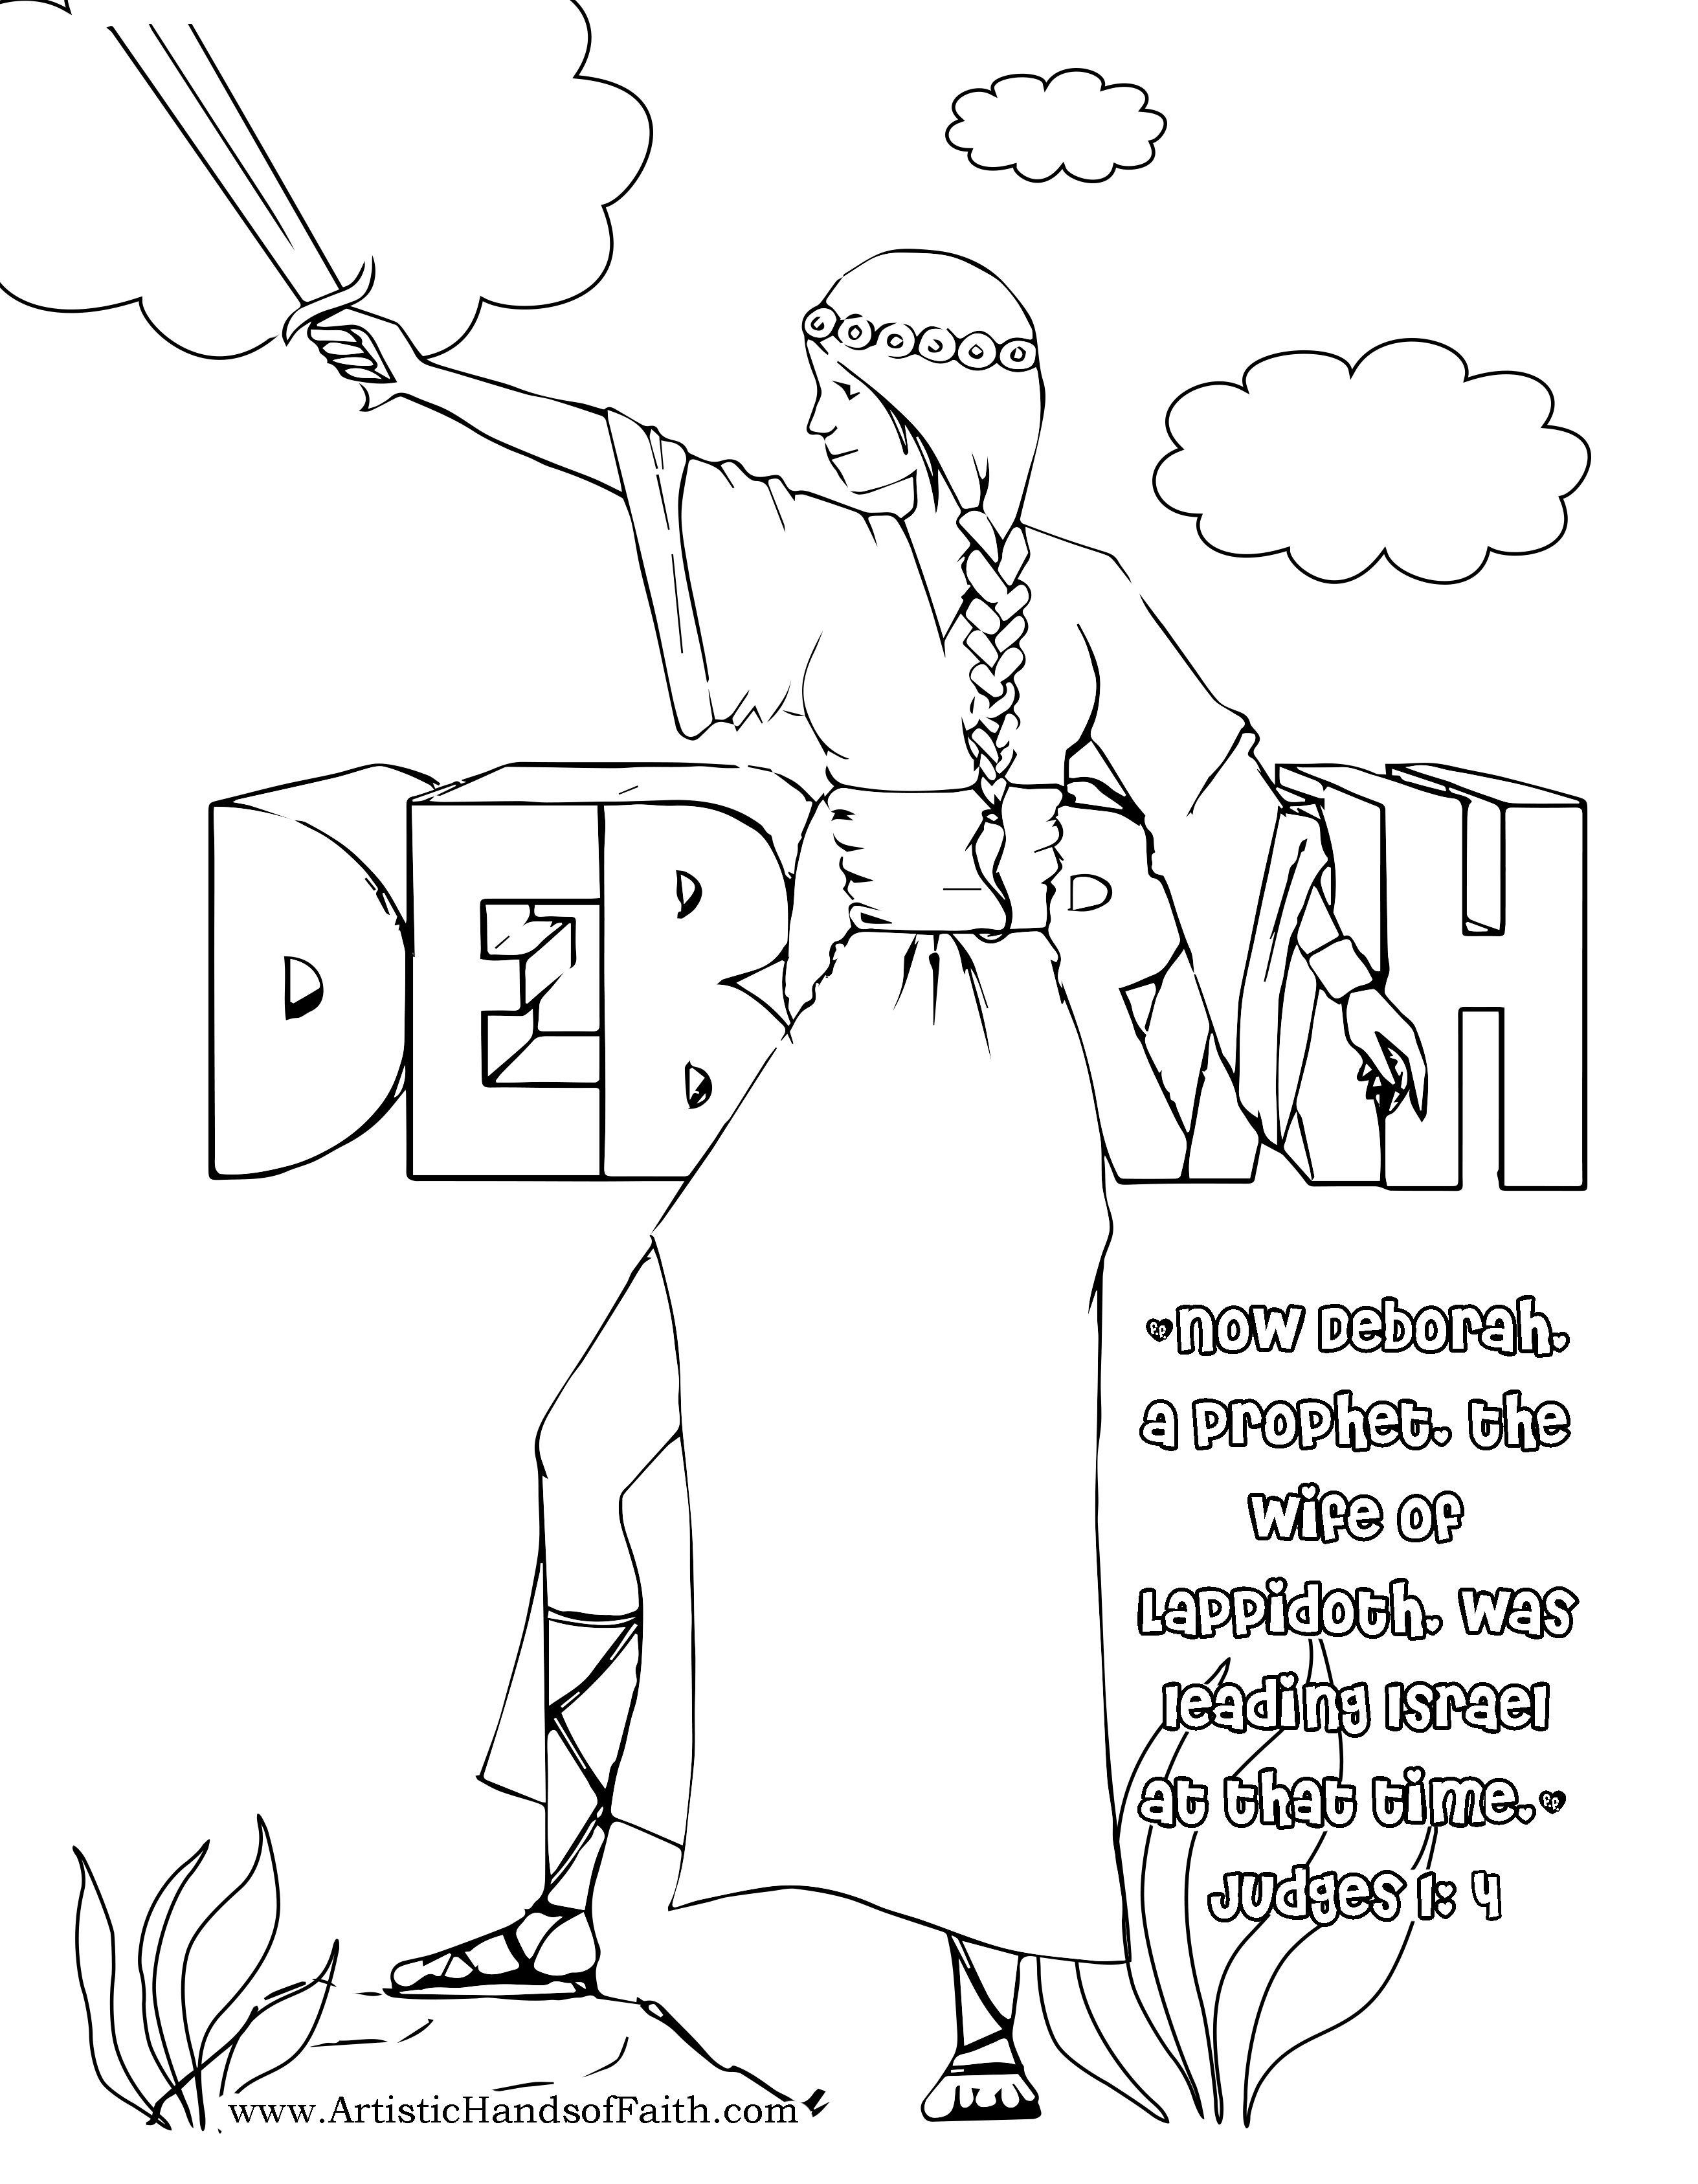 temptation of jesus coloring pages for kids Download-Starfish Coloring Pages Joseph and His Coat Many Colors Coloring Page 2-q